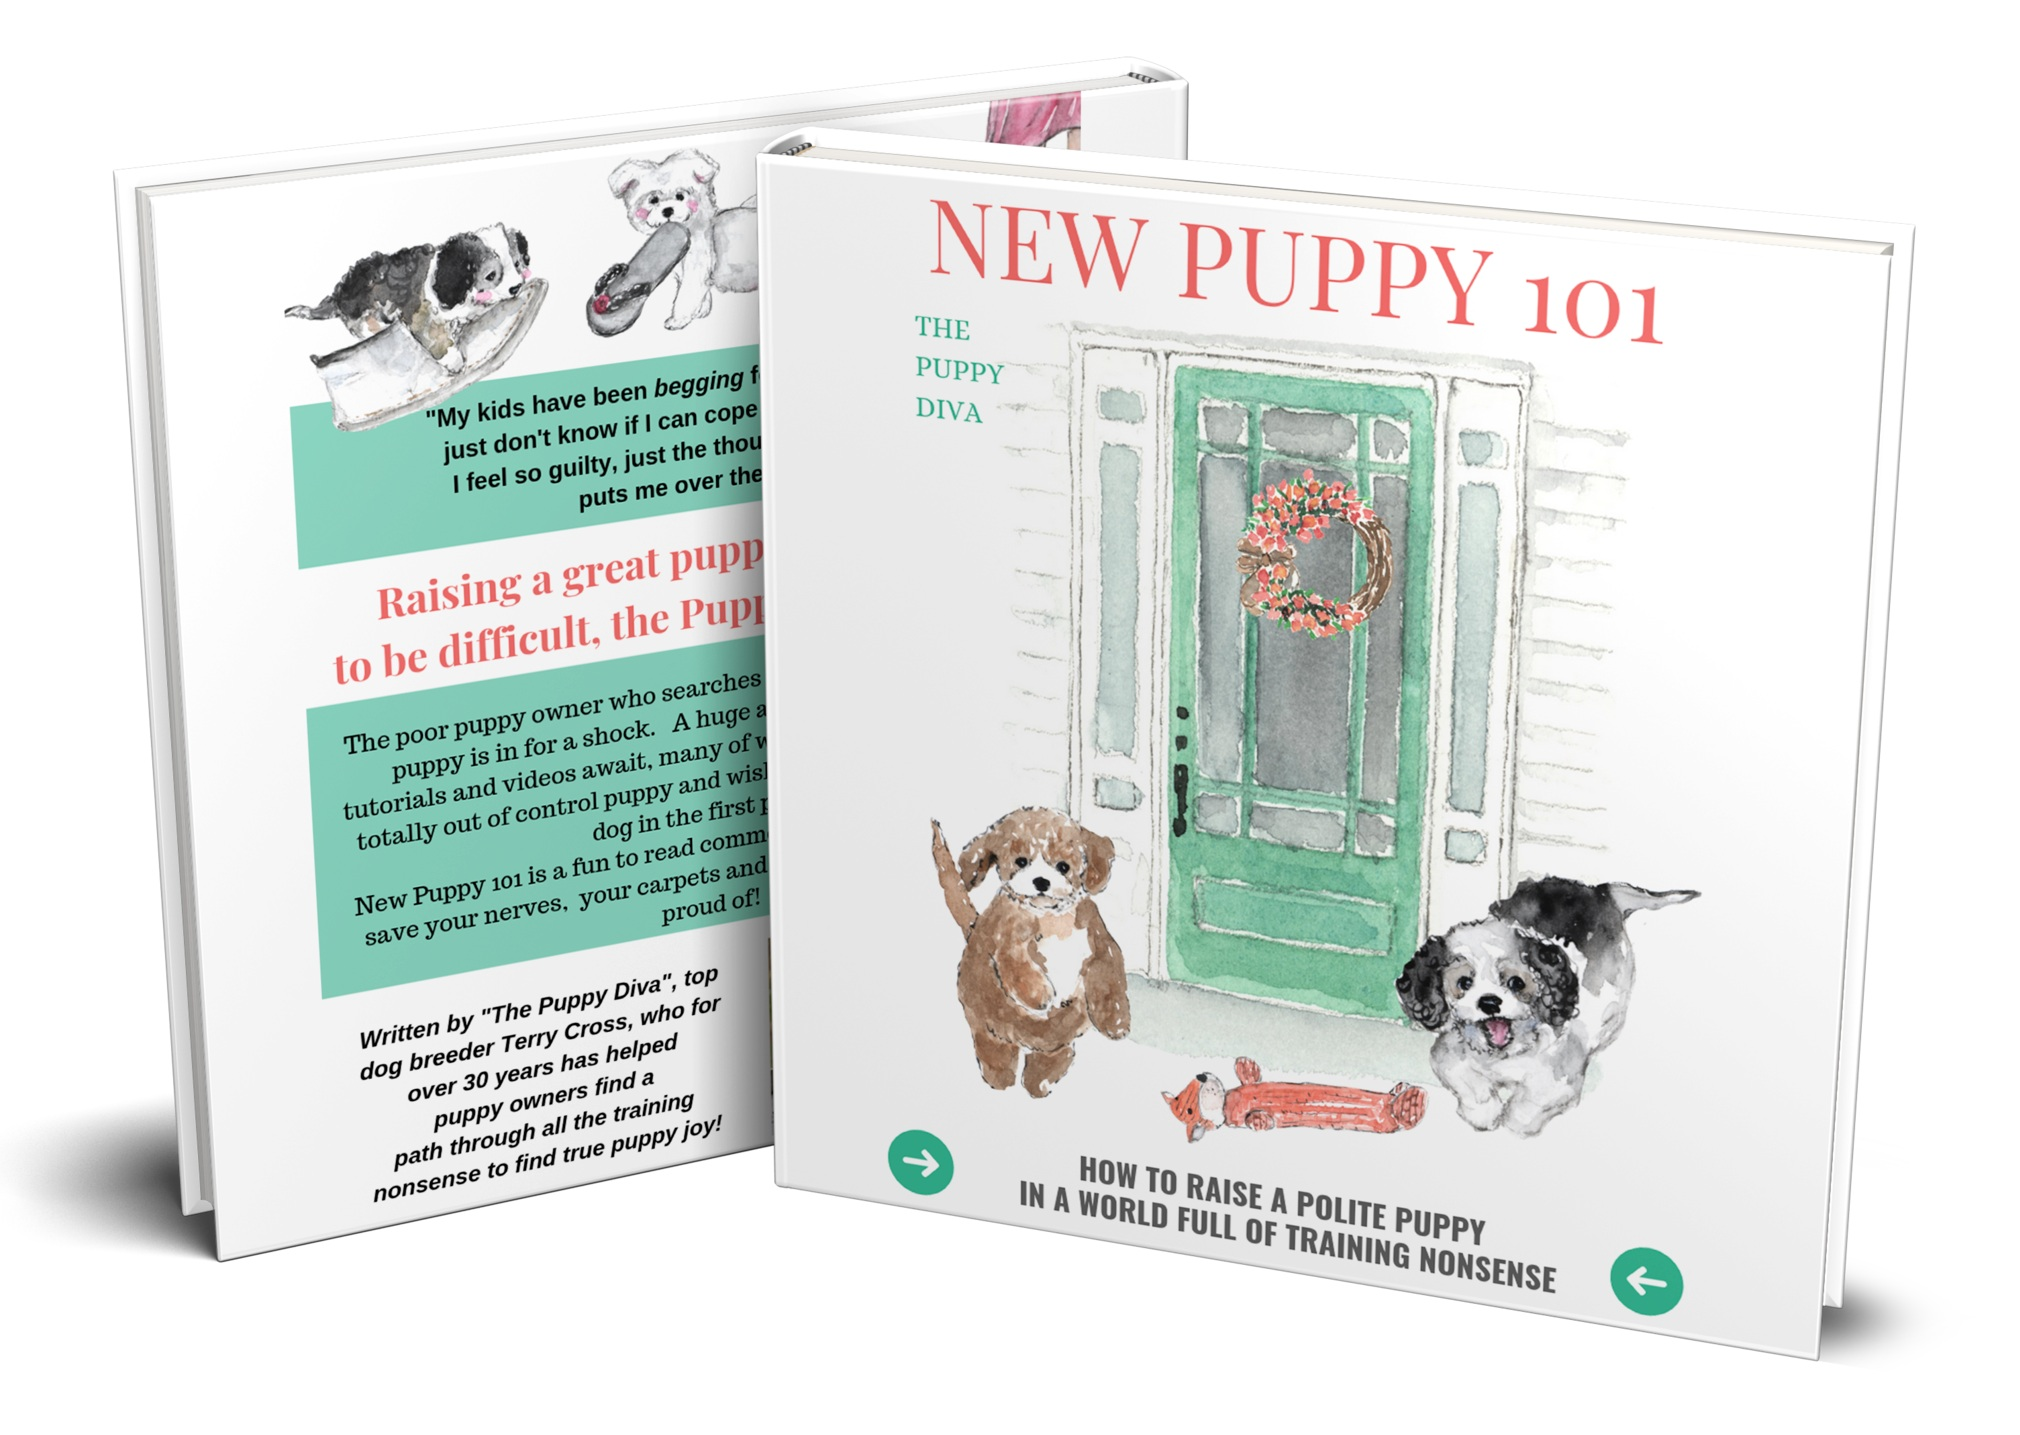 Puppy training ebook New Puppy 101